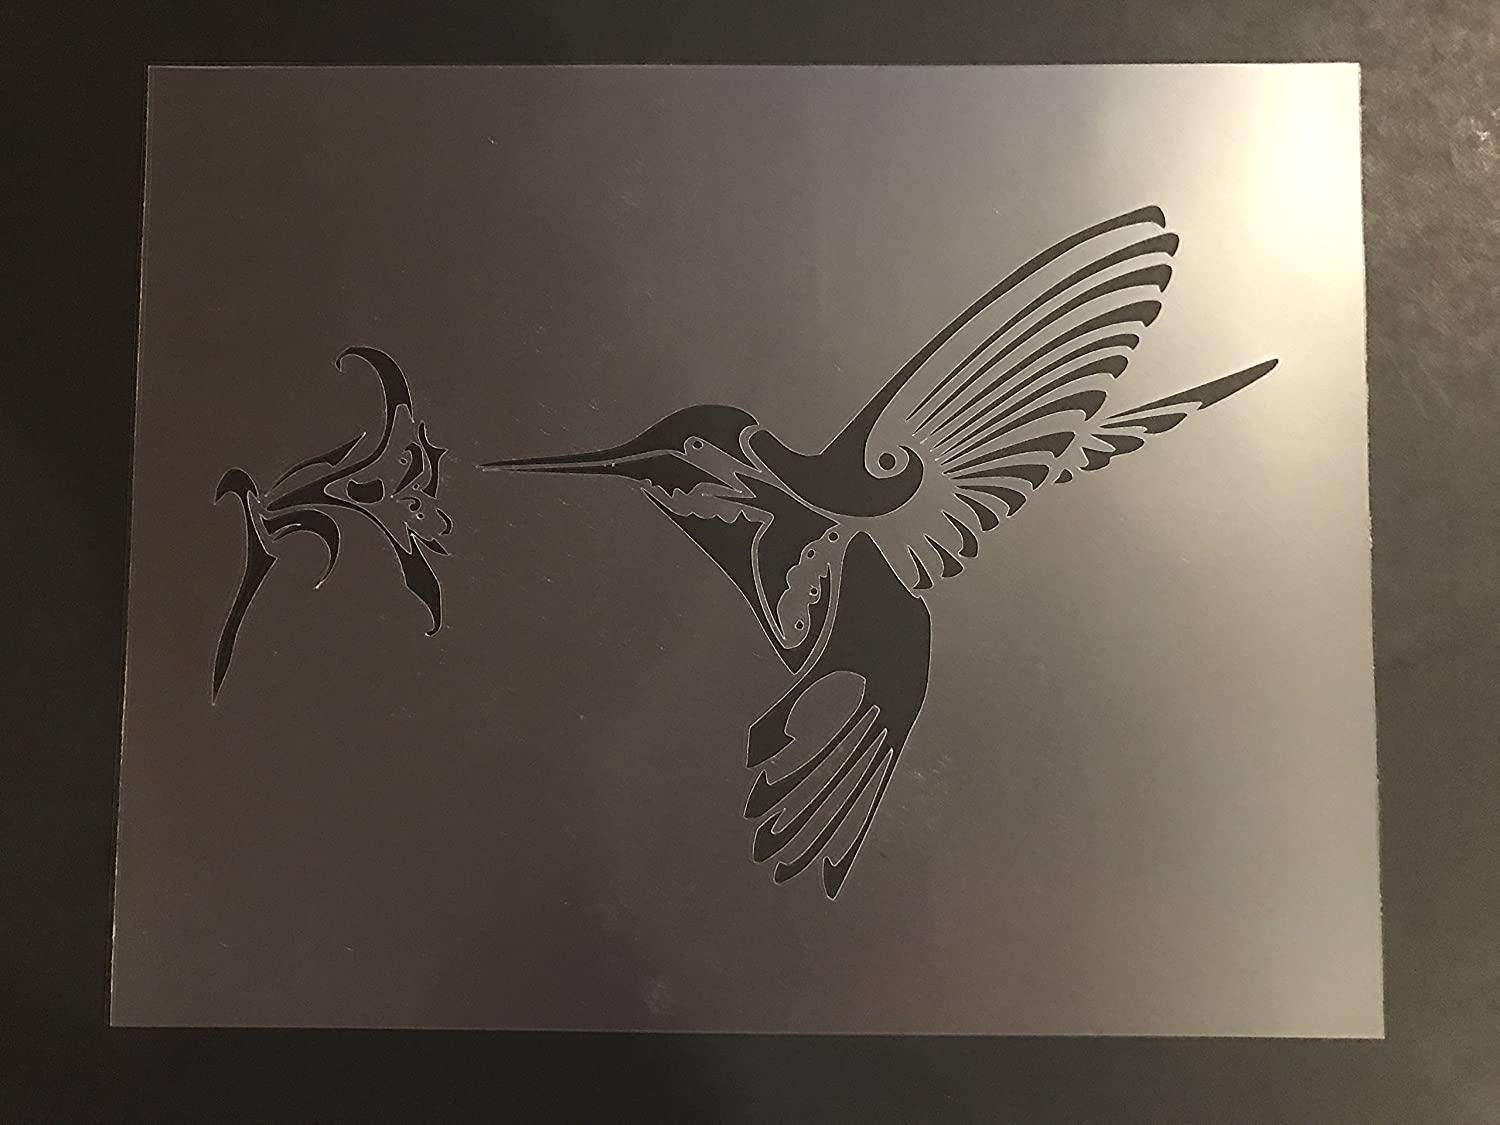 Humming Bird Stencil #1 Reusable 10 mil Thick 7in x 9in sheet